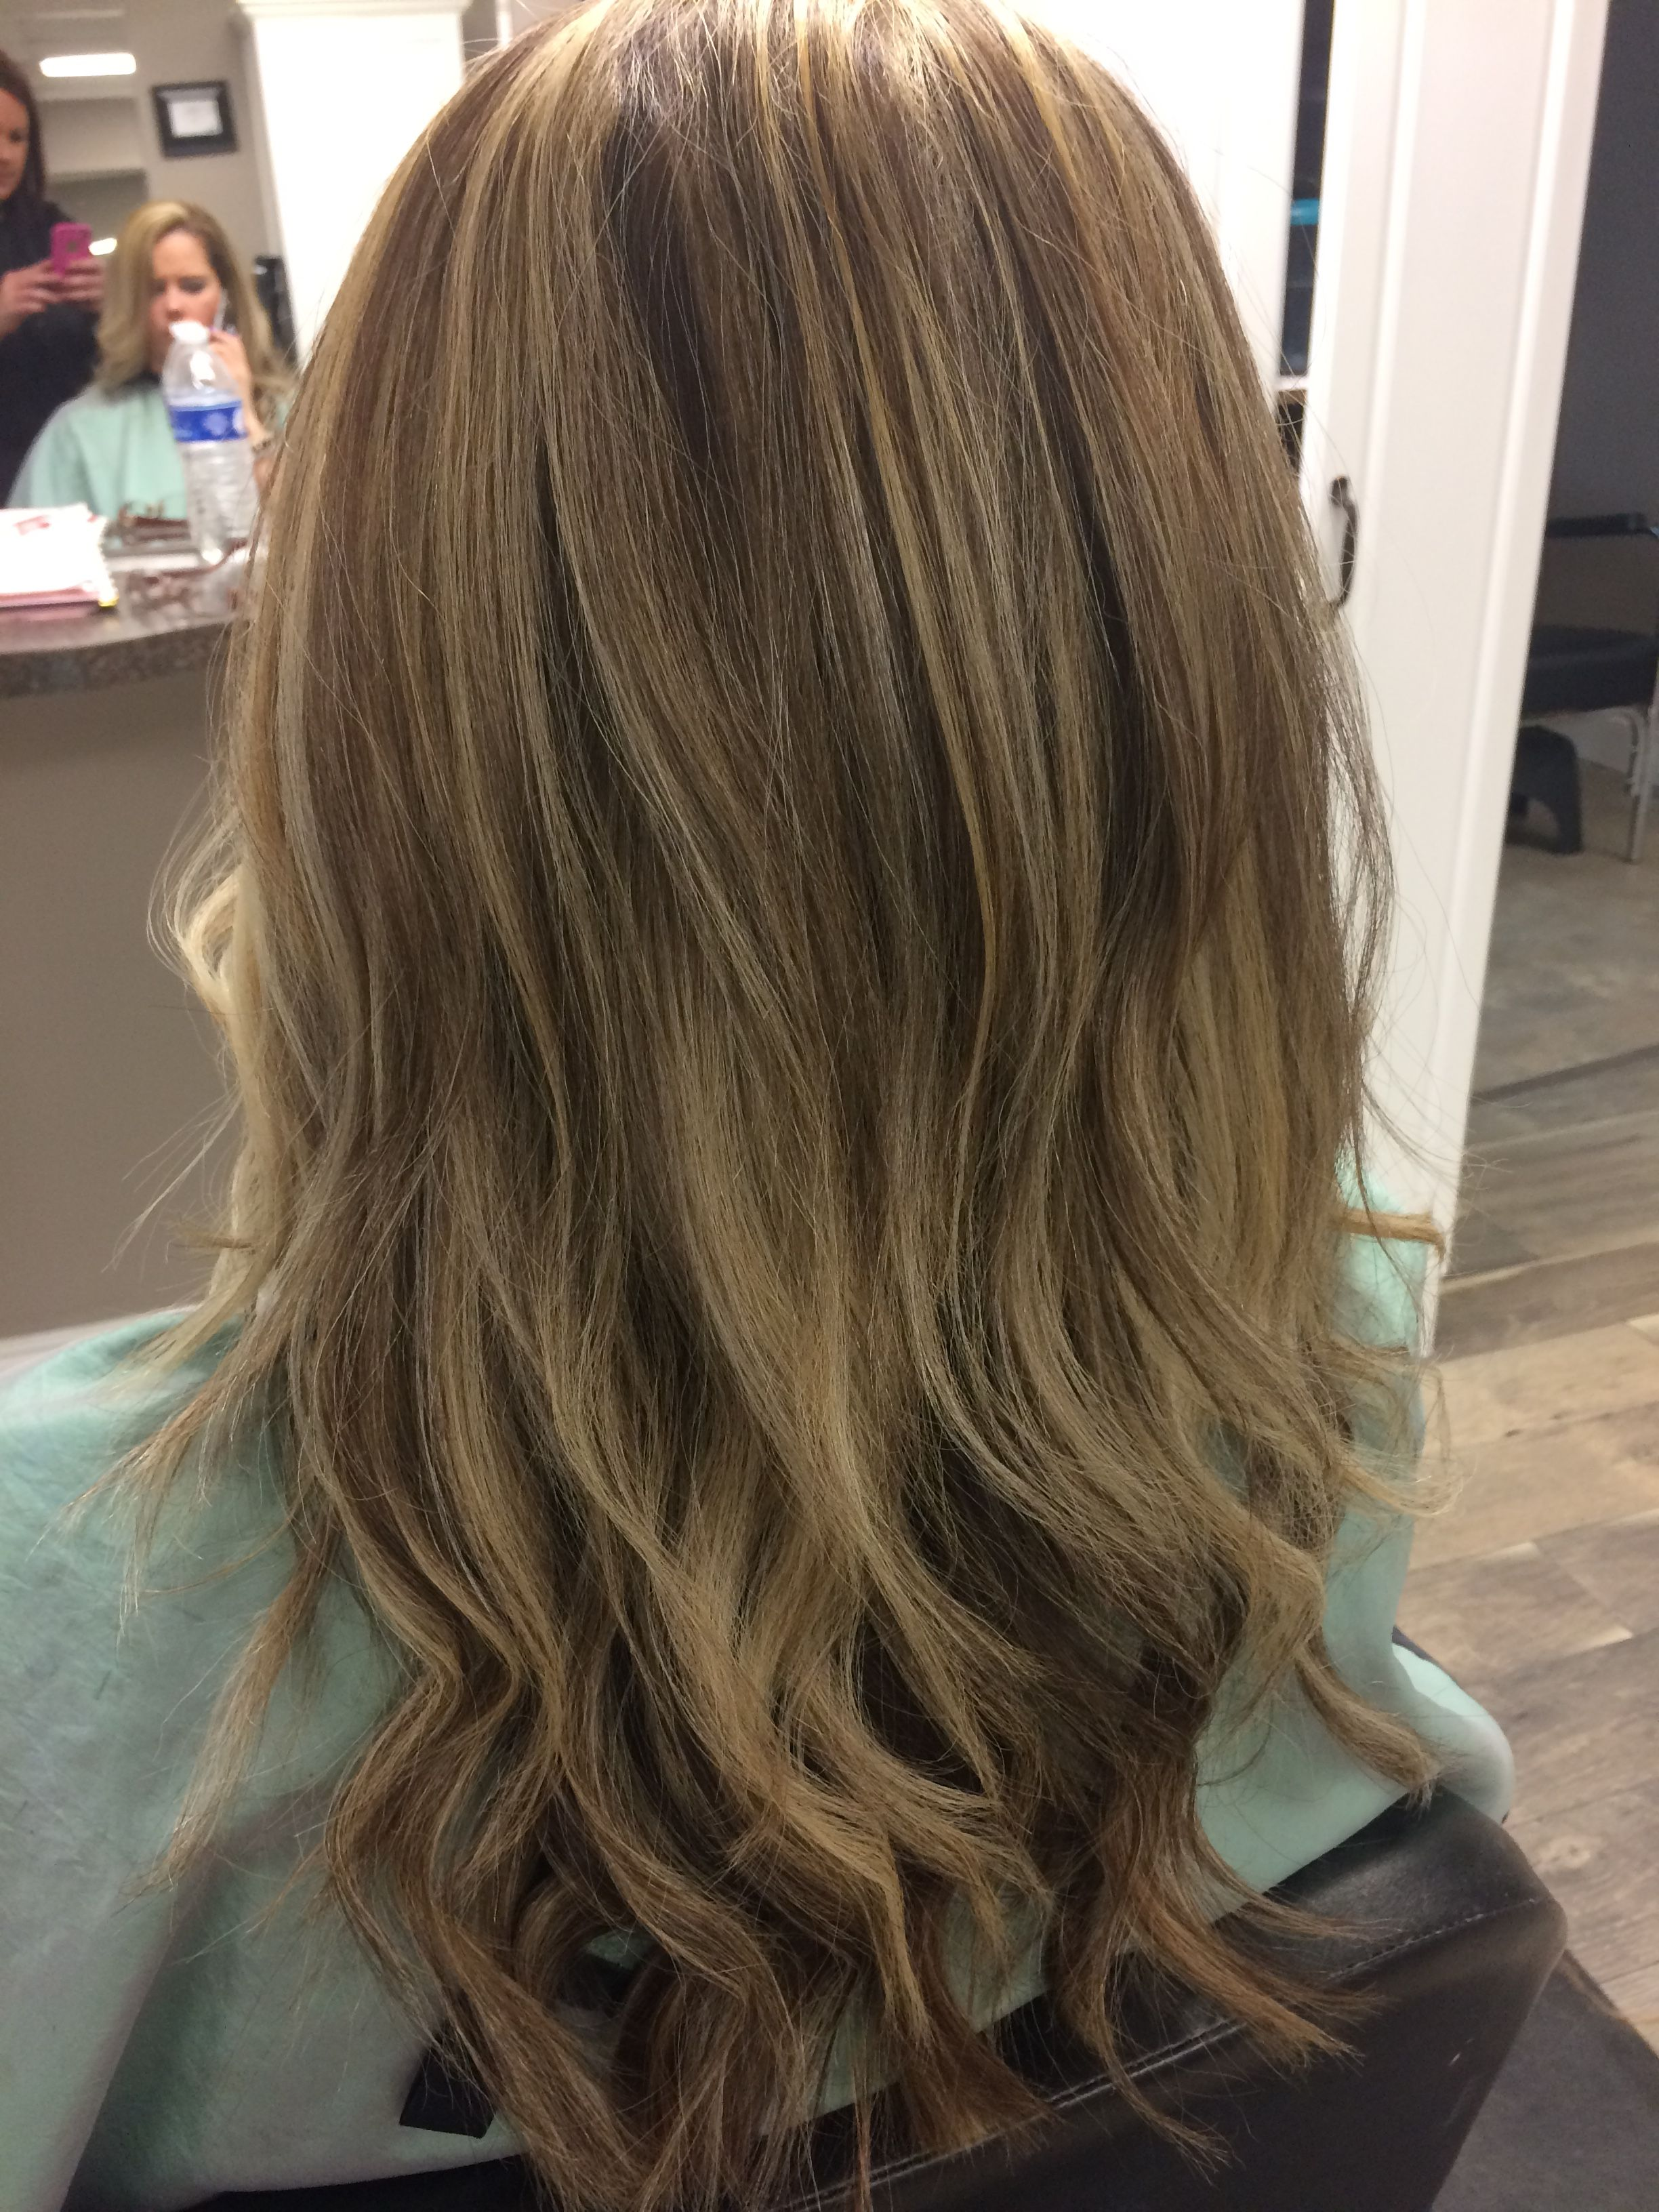 Beautiful Blonde Hair Lifted From Level 3 4 With Light Master And Level 7 Cool Series In Allnutrient Toned Beautiful Blonde Hair Light Brown Hair Hair Lift